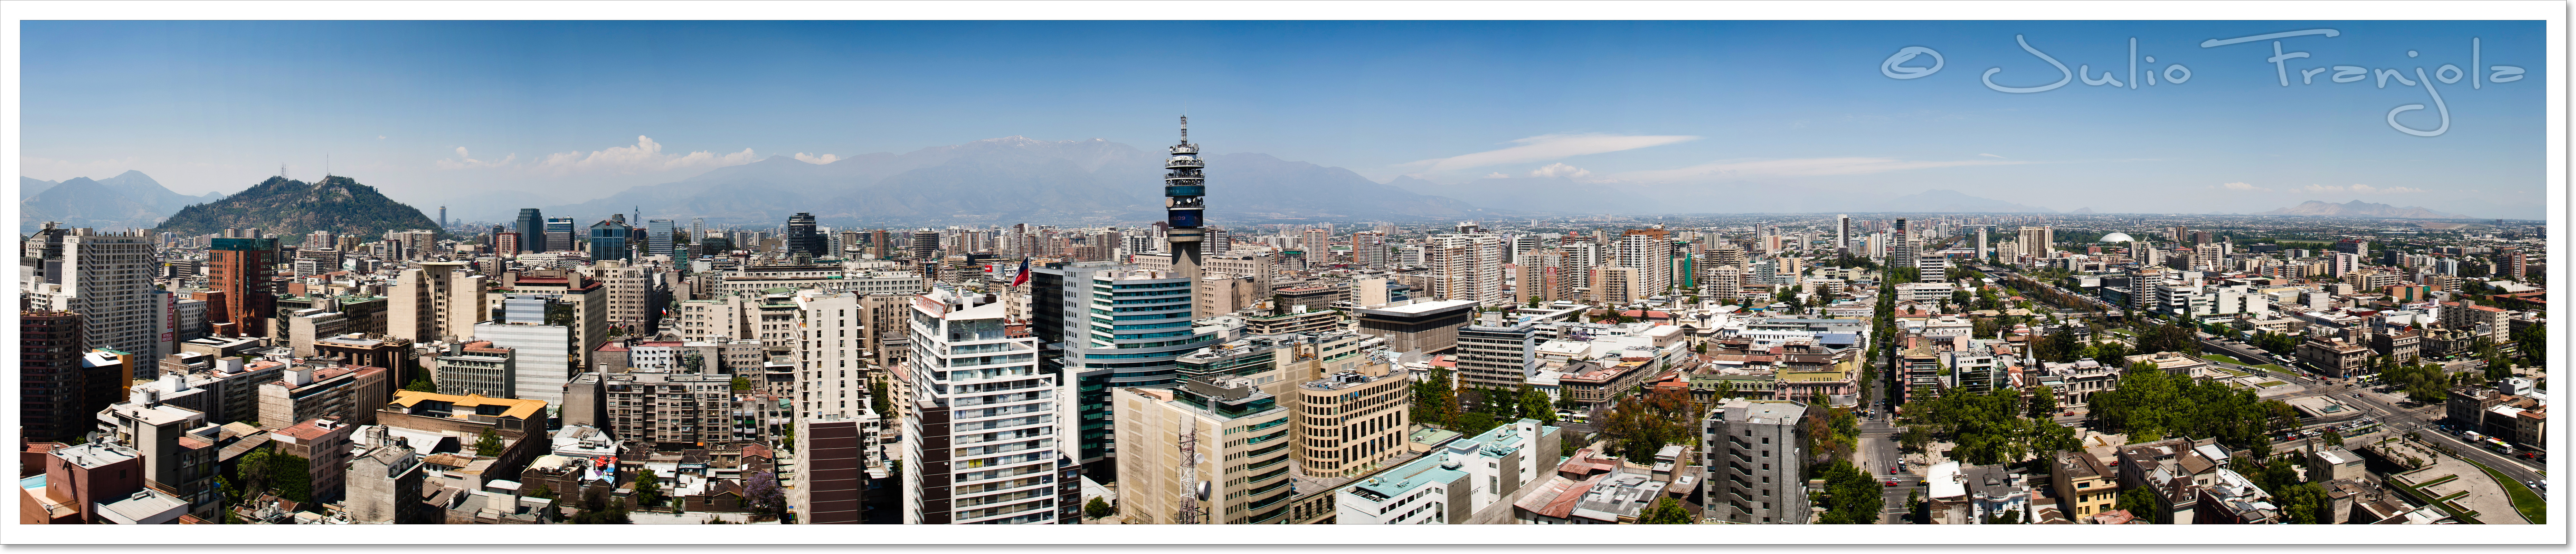 how to call santiago chile